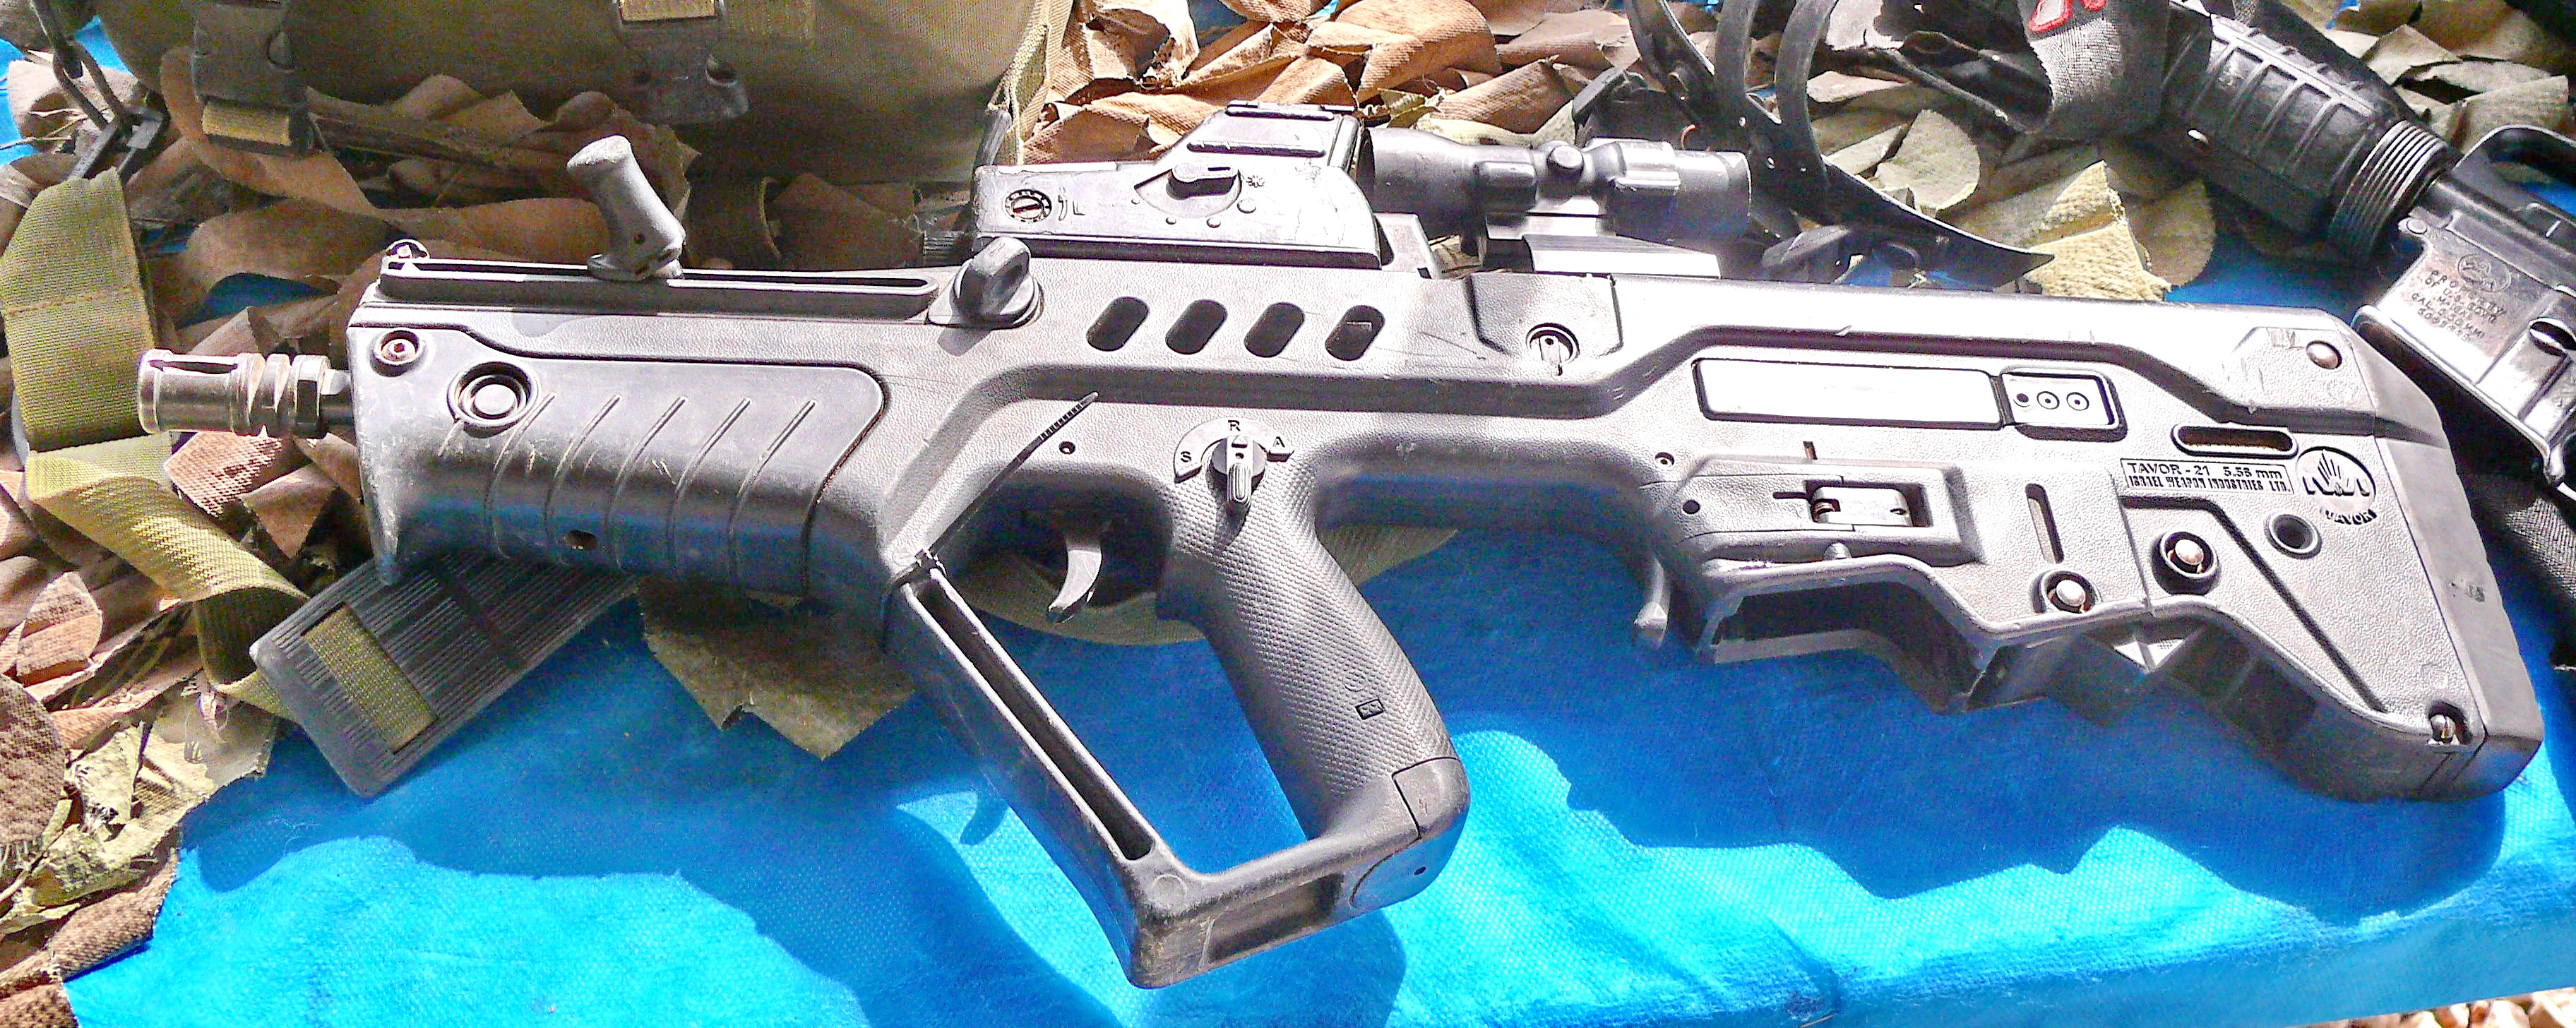 http://upload.wikimedia.org/wikipedia/commons/e/e4/IWI-Tavor001.jpg